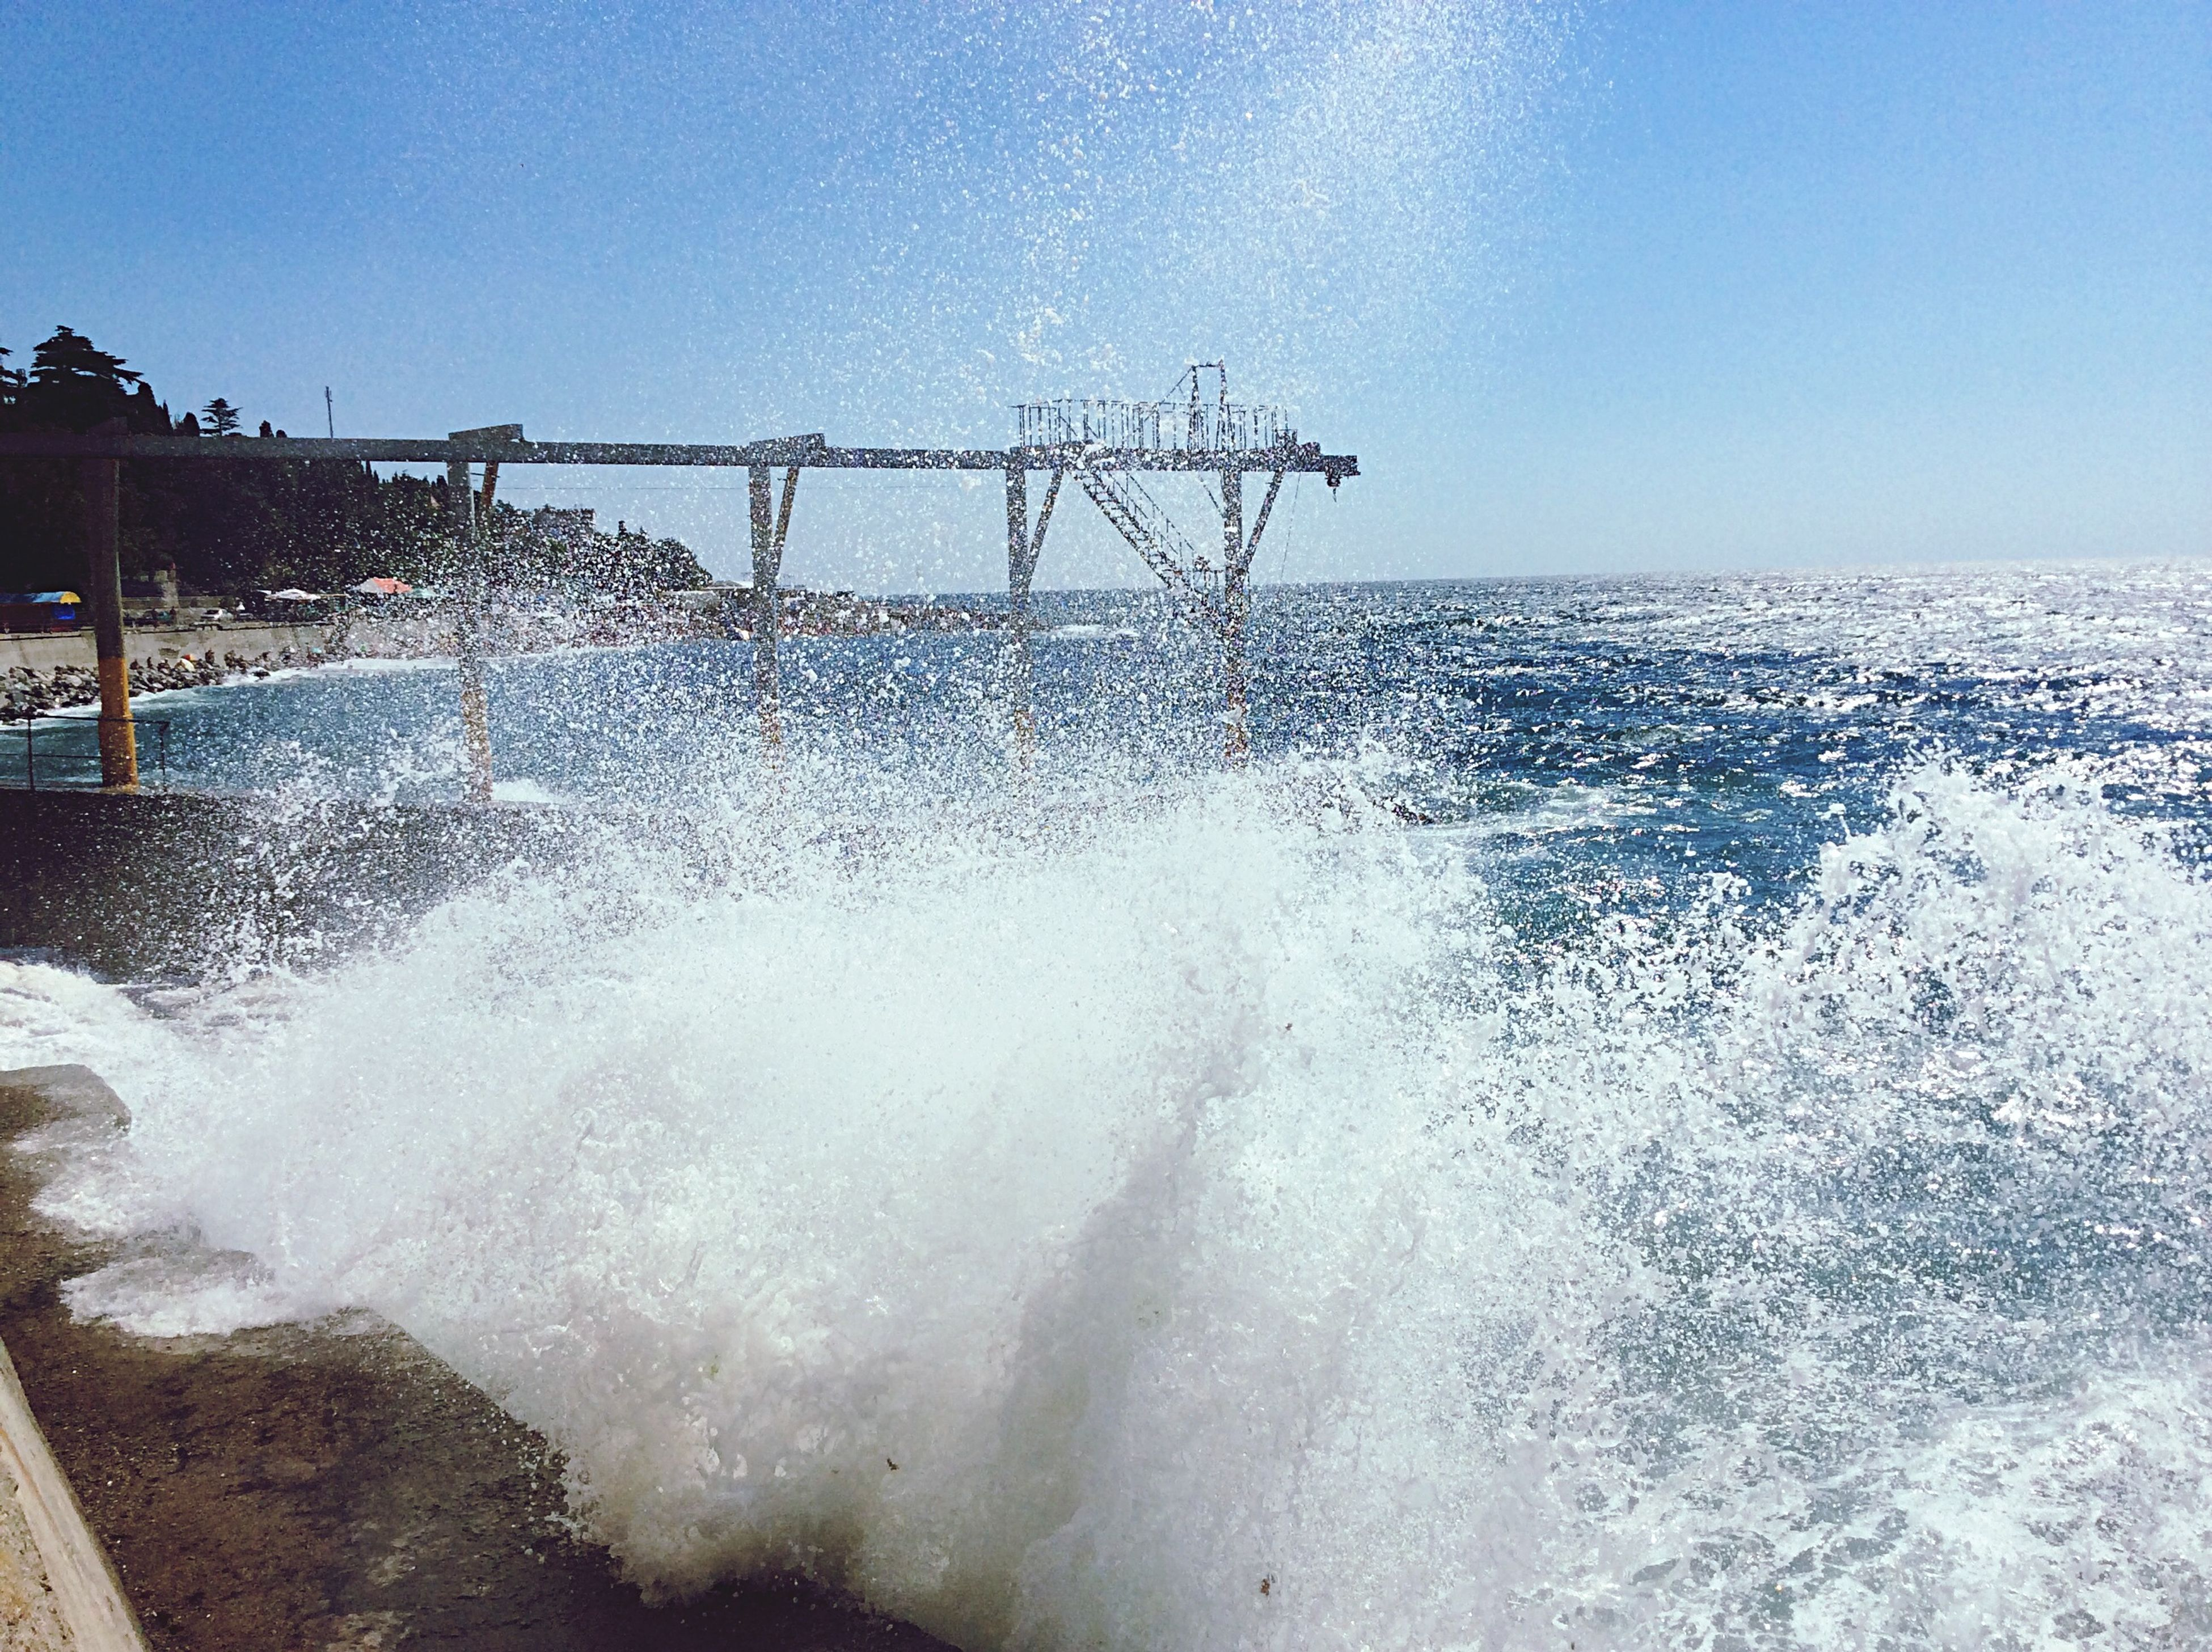 water, sea, wave, splashing, motion, surf, horizon over water, clear sky, scenics, sky, beauty in nature, shore, nature, beach, power in nature, outdoors, wet, day, sunlight, long exposure